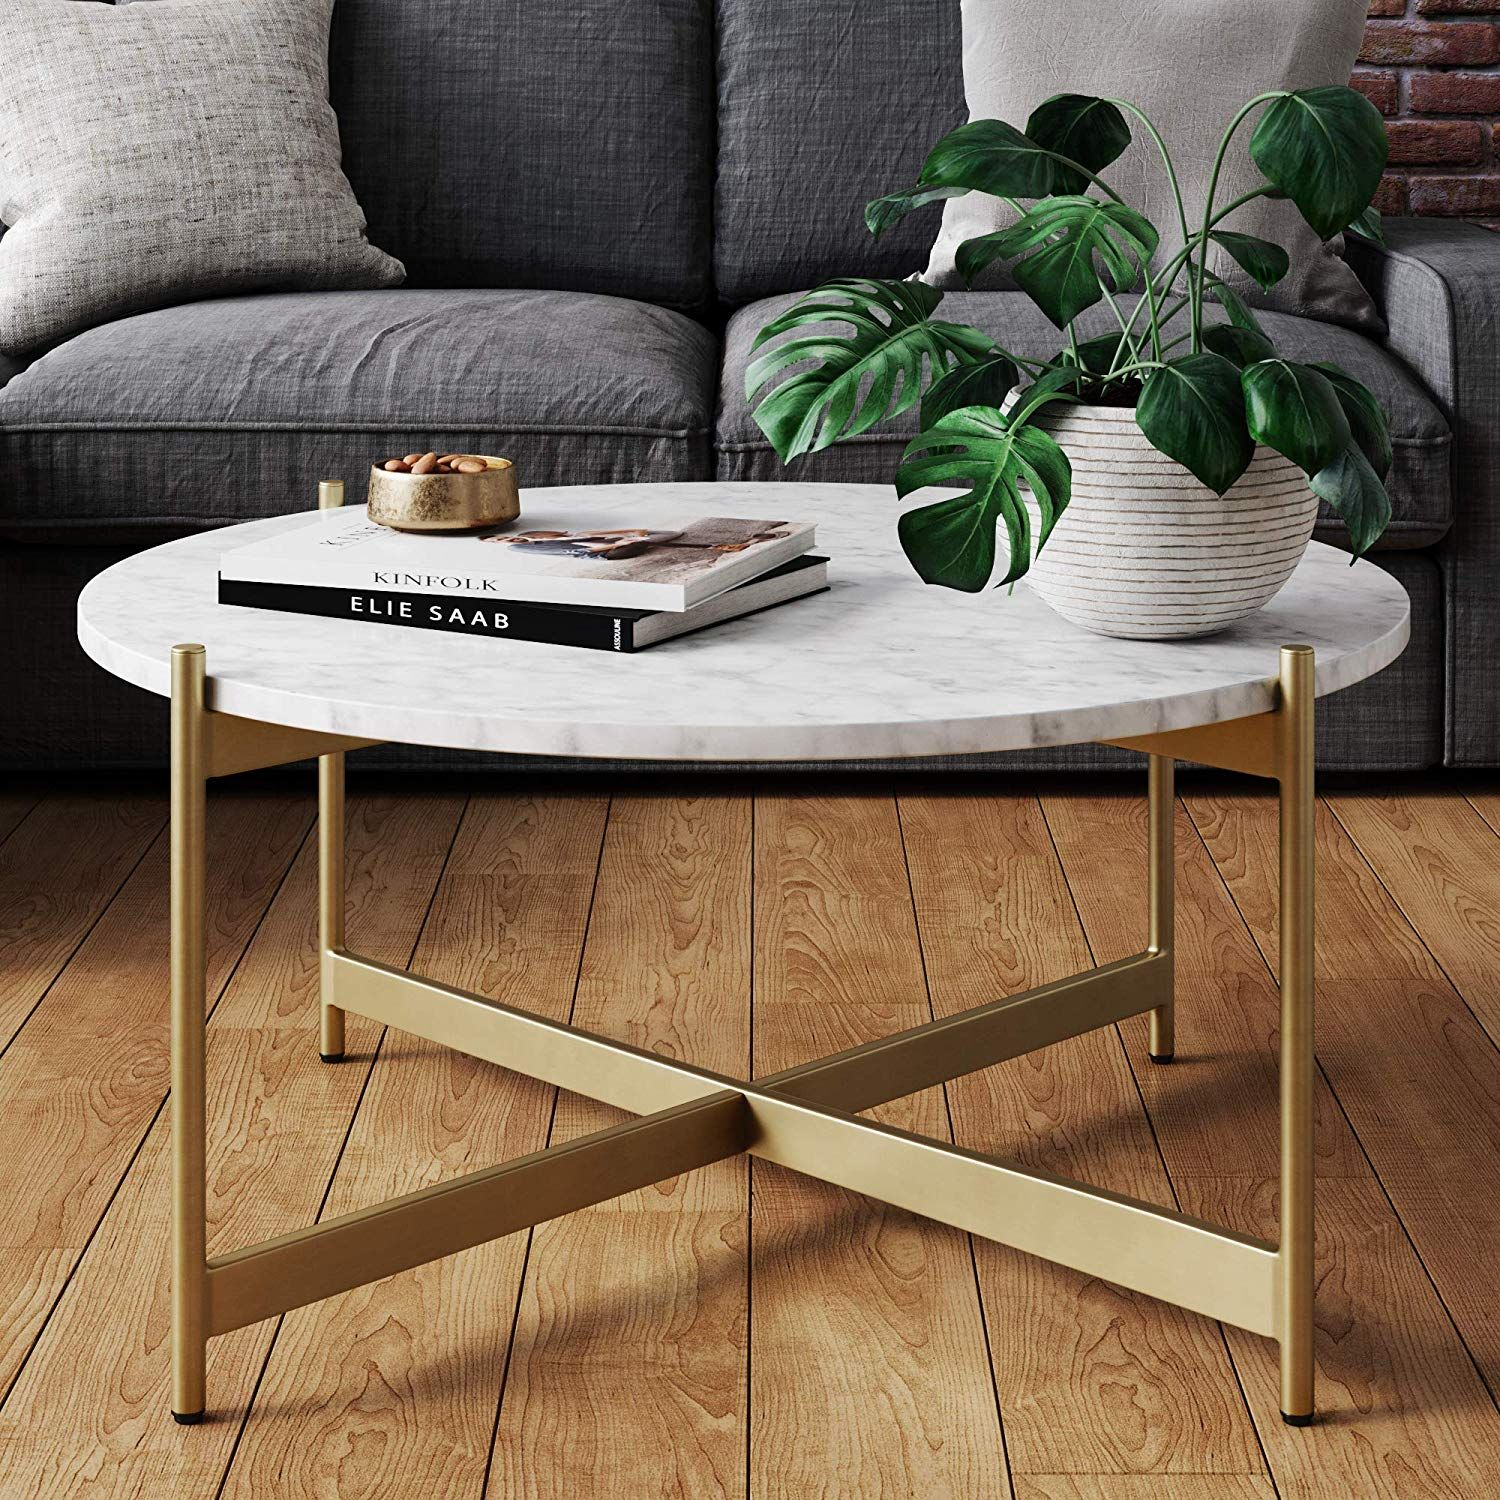 Nathan James Piper Faux Marble Round Modern Living Room Coffee Table Wi With Images Coffee Table Living Room Modern Living Room Coffee Table Round Coffee Table Living Room